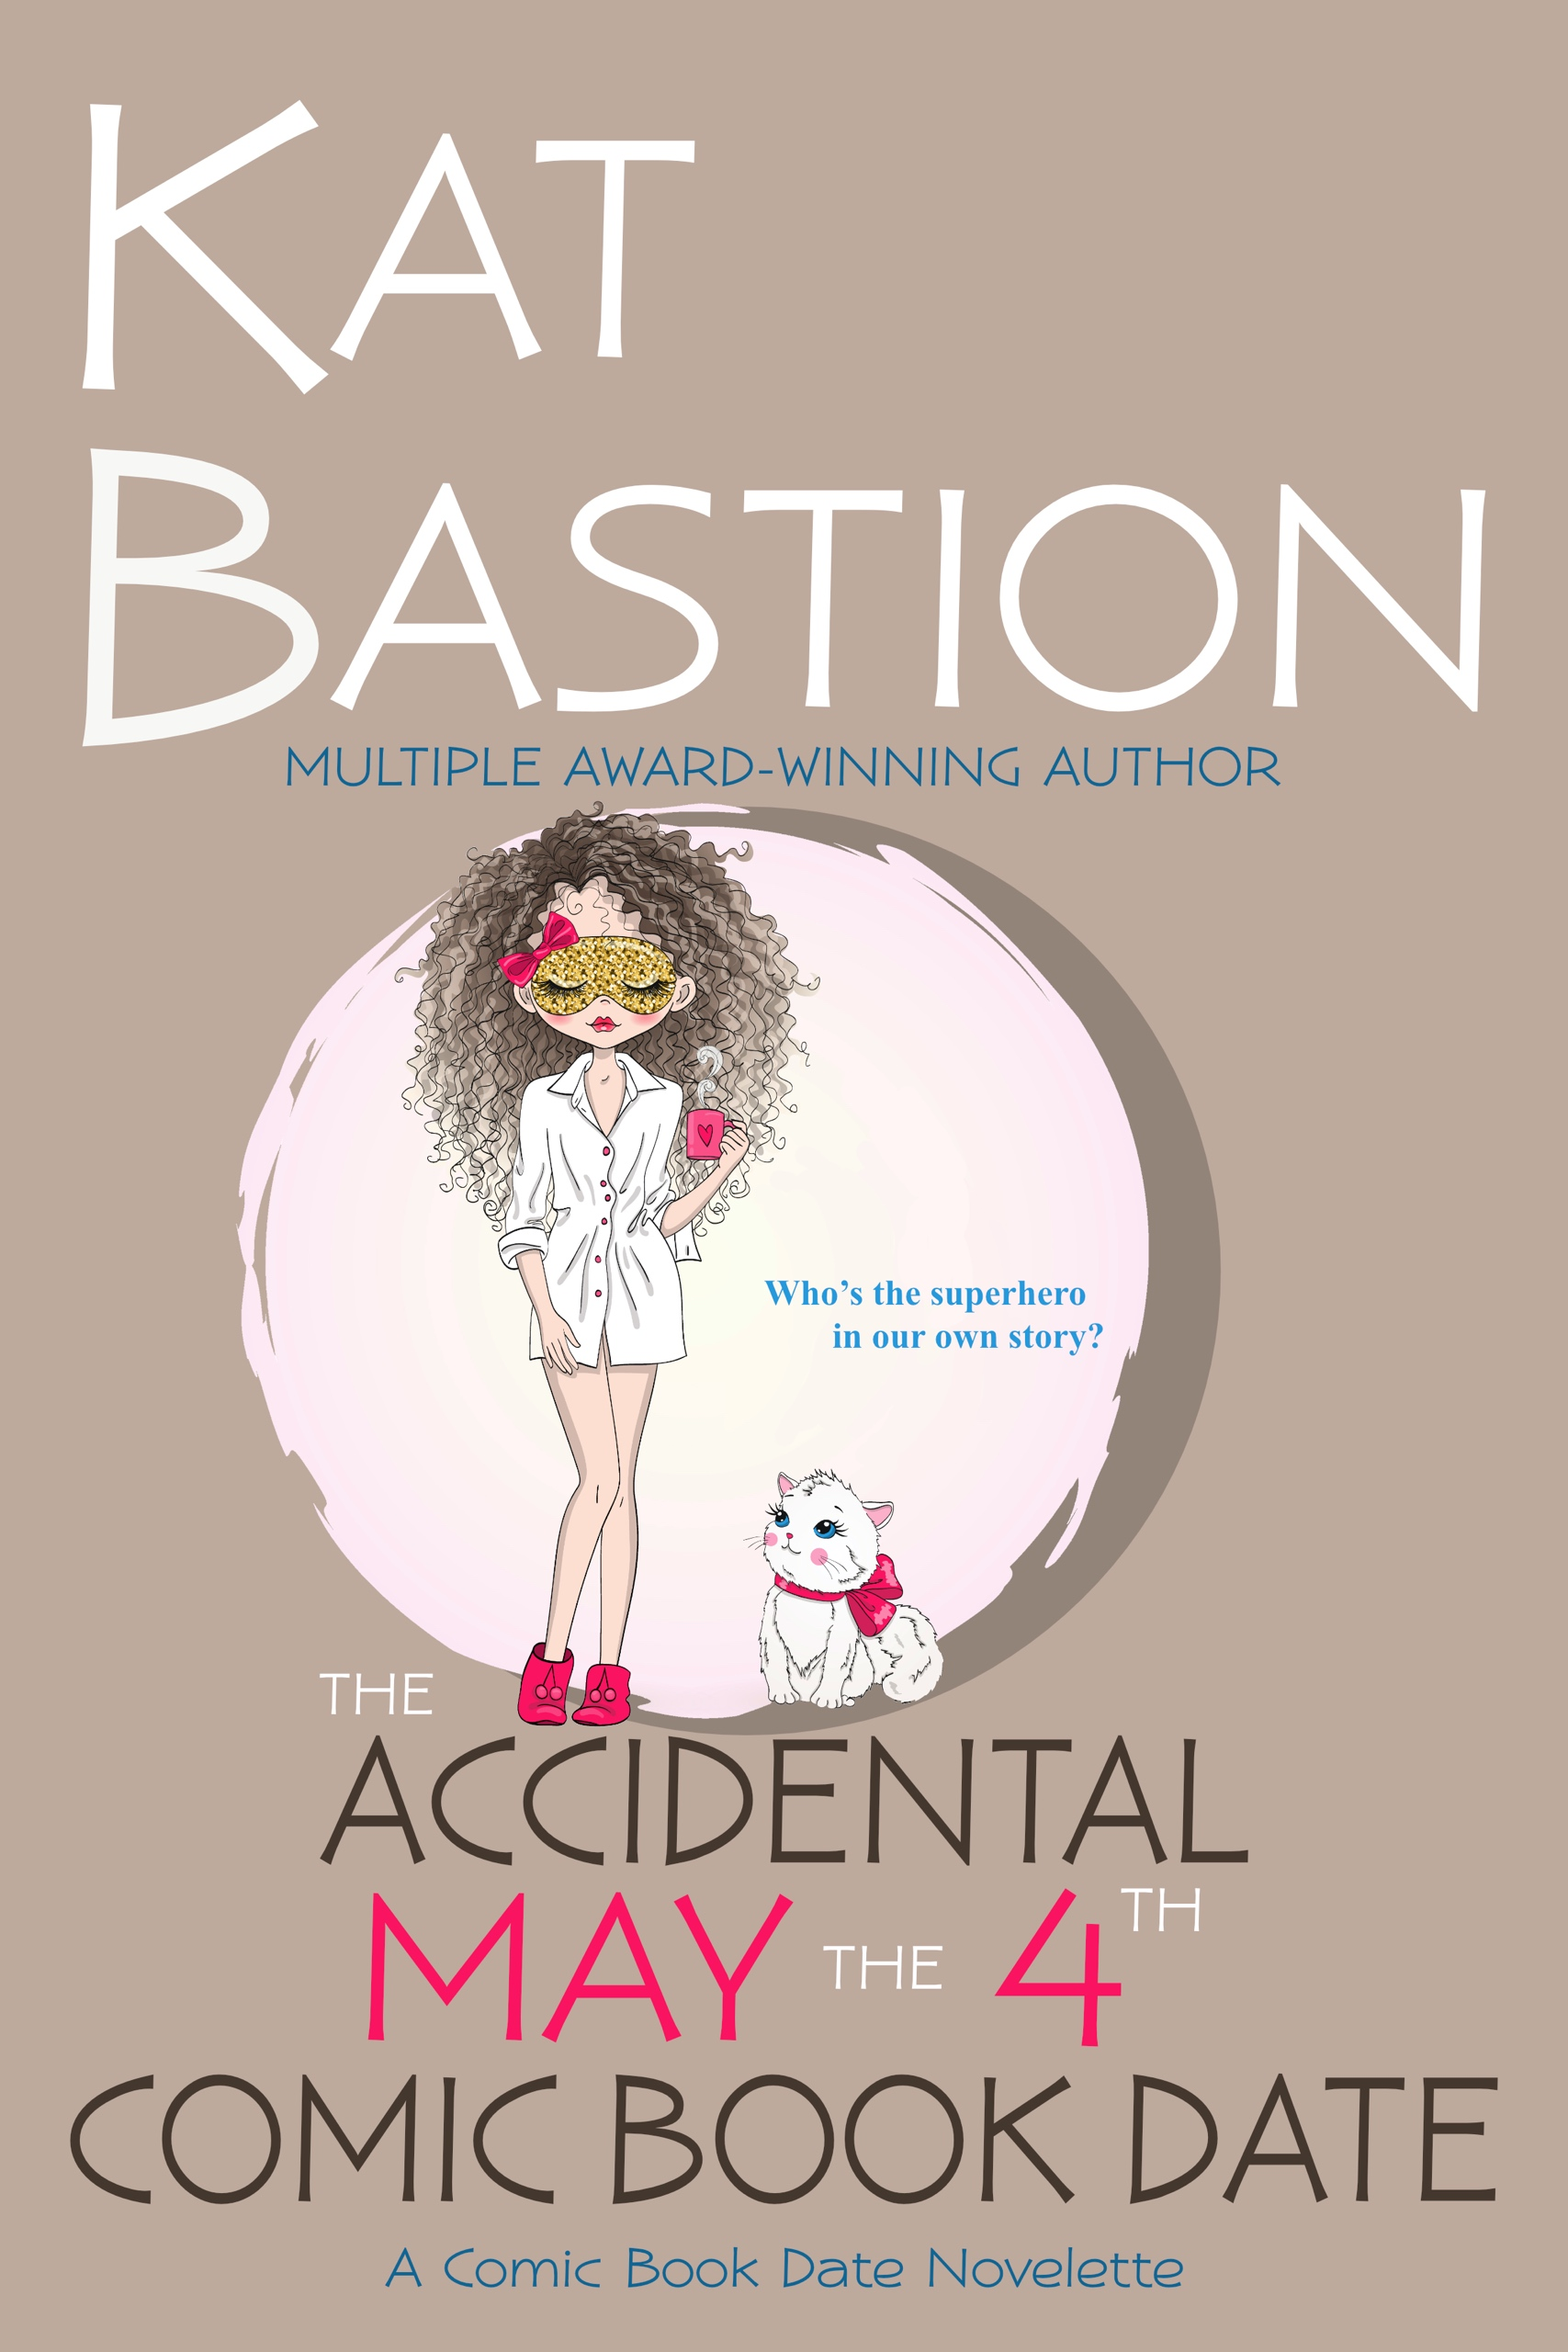 Cover for The Accidental May the 4th Comic Book Date, girl in face mask and white cat, both with pink bow